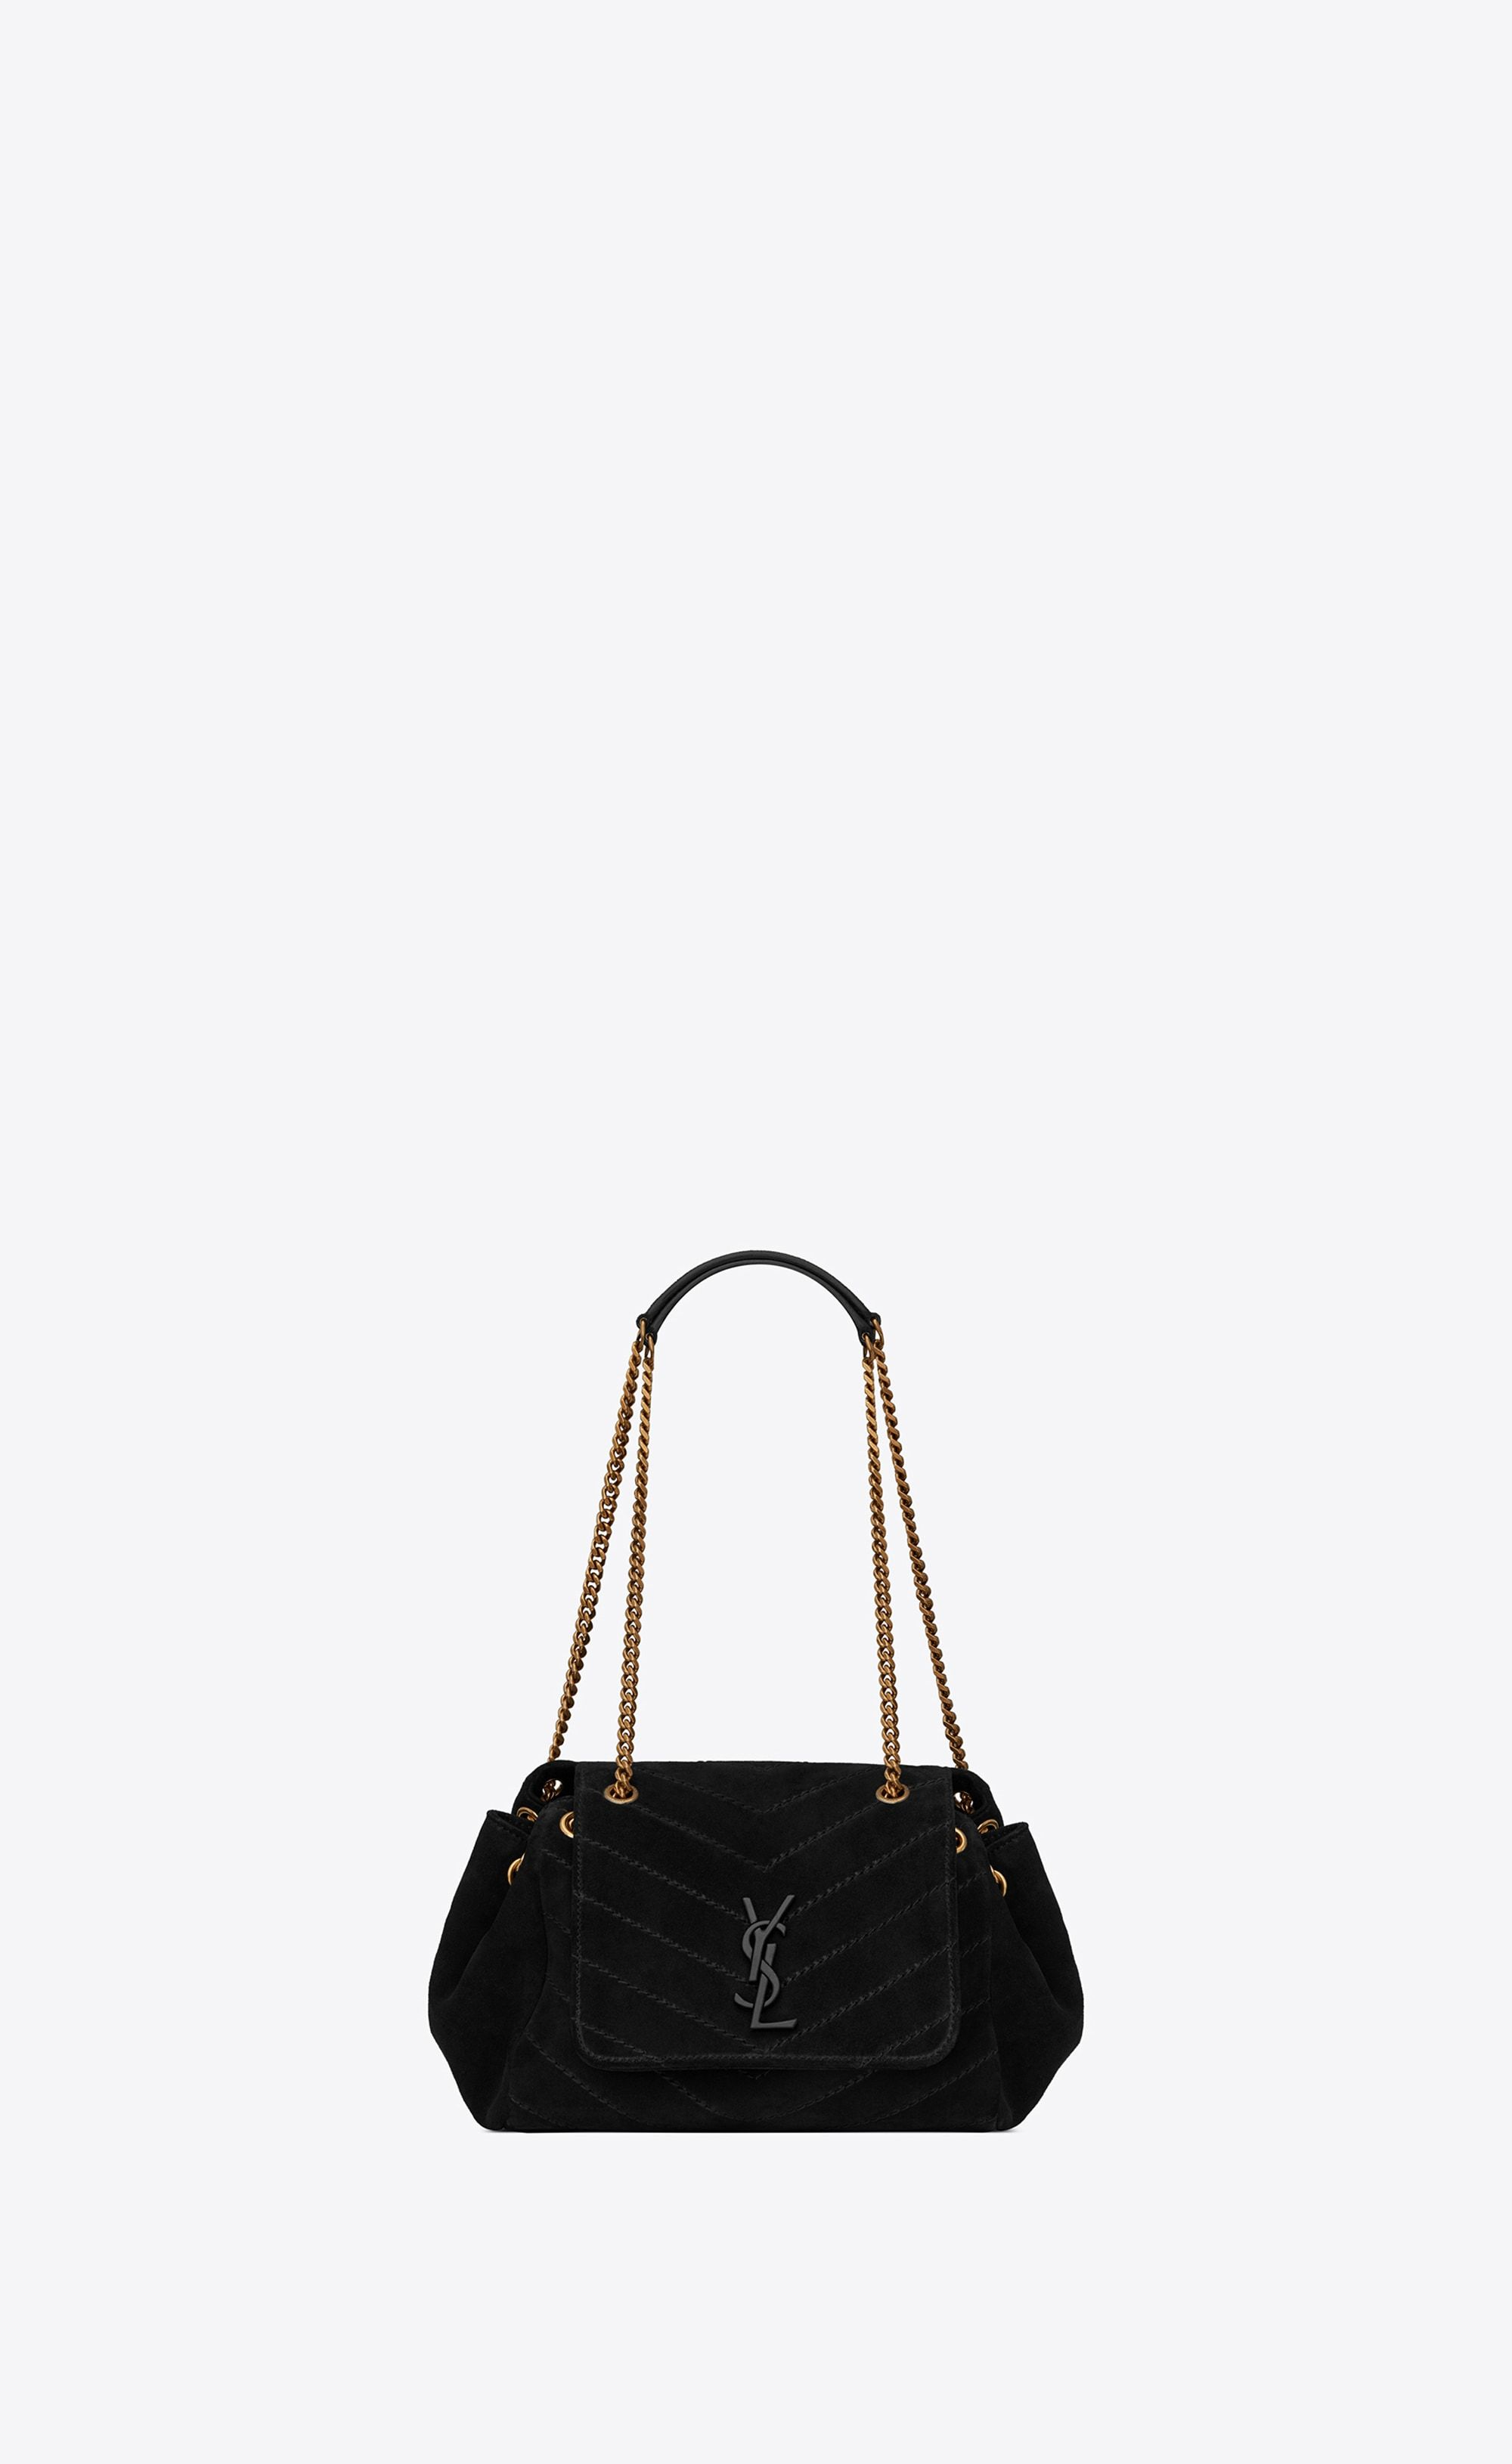 f80249c8d93e  Saint Laurent Small Nolita Chain Bag In Suede